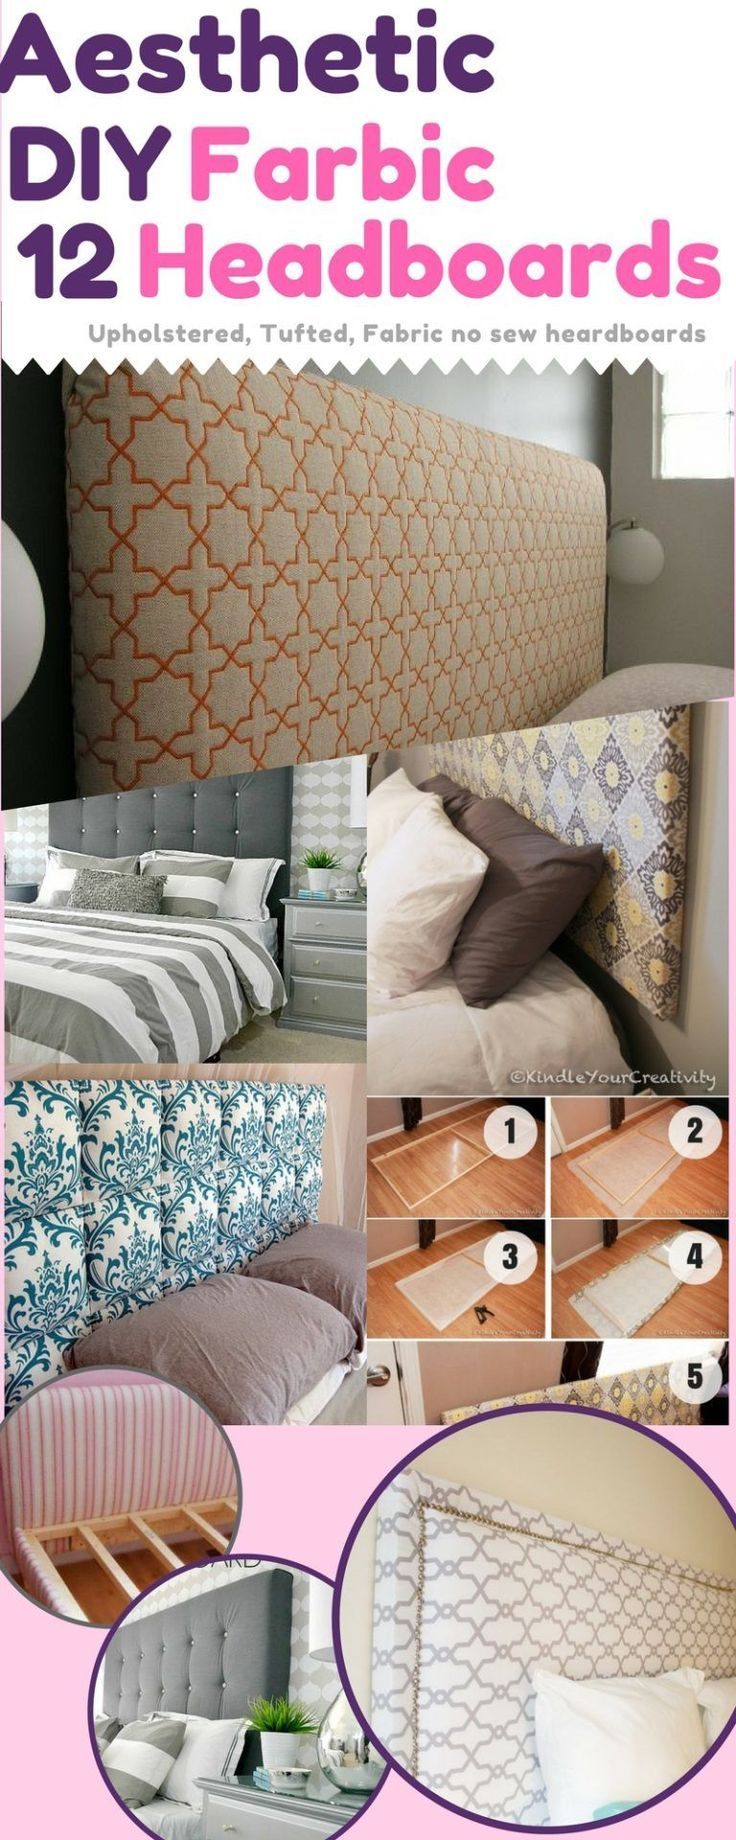 painting Fabric Headboard 12 Aesthetic Headboards for Your